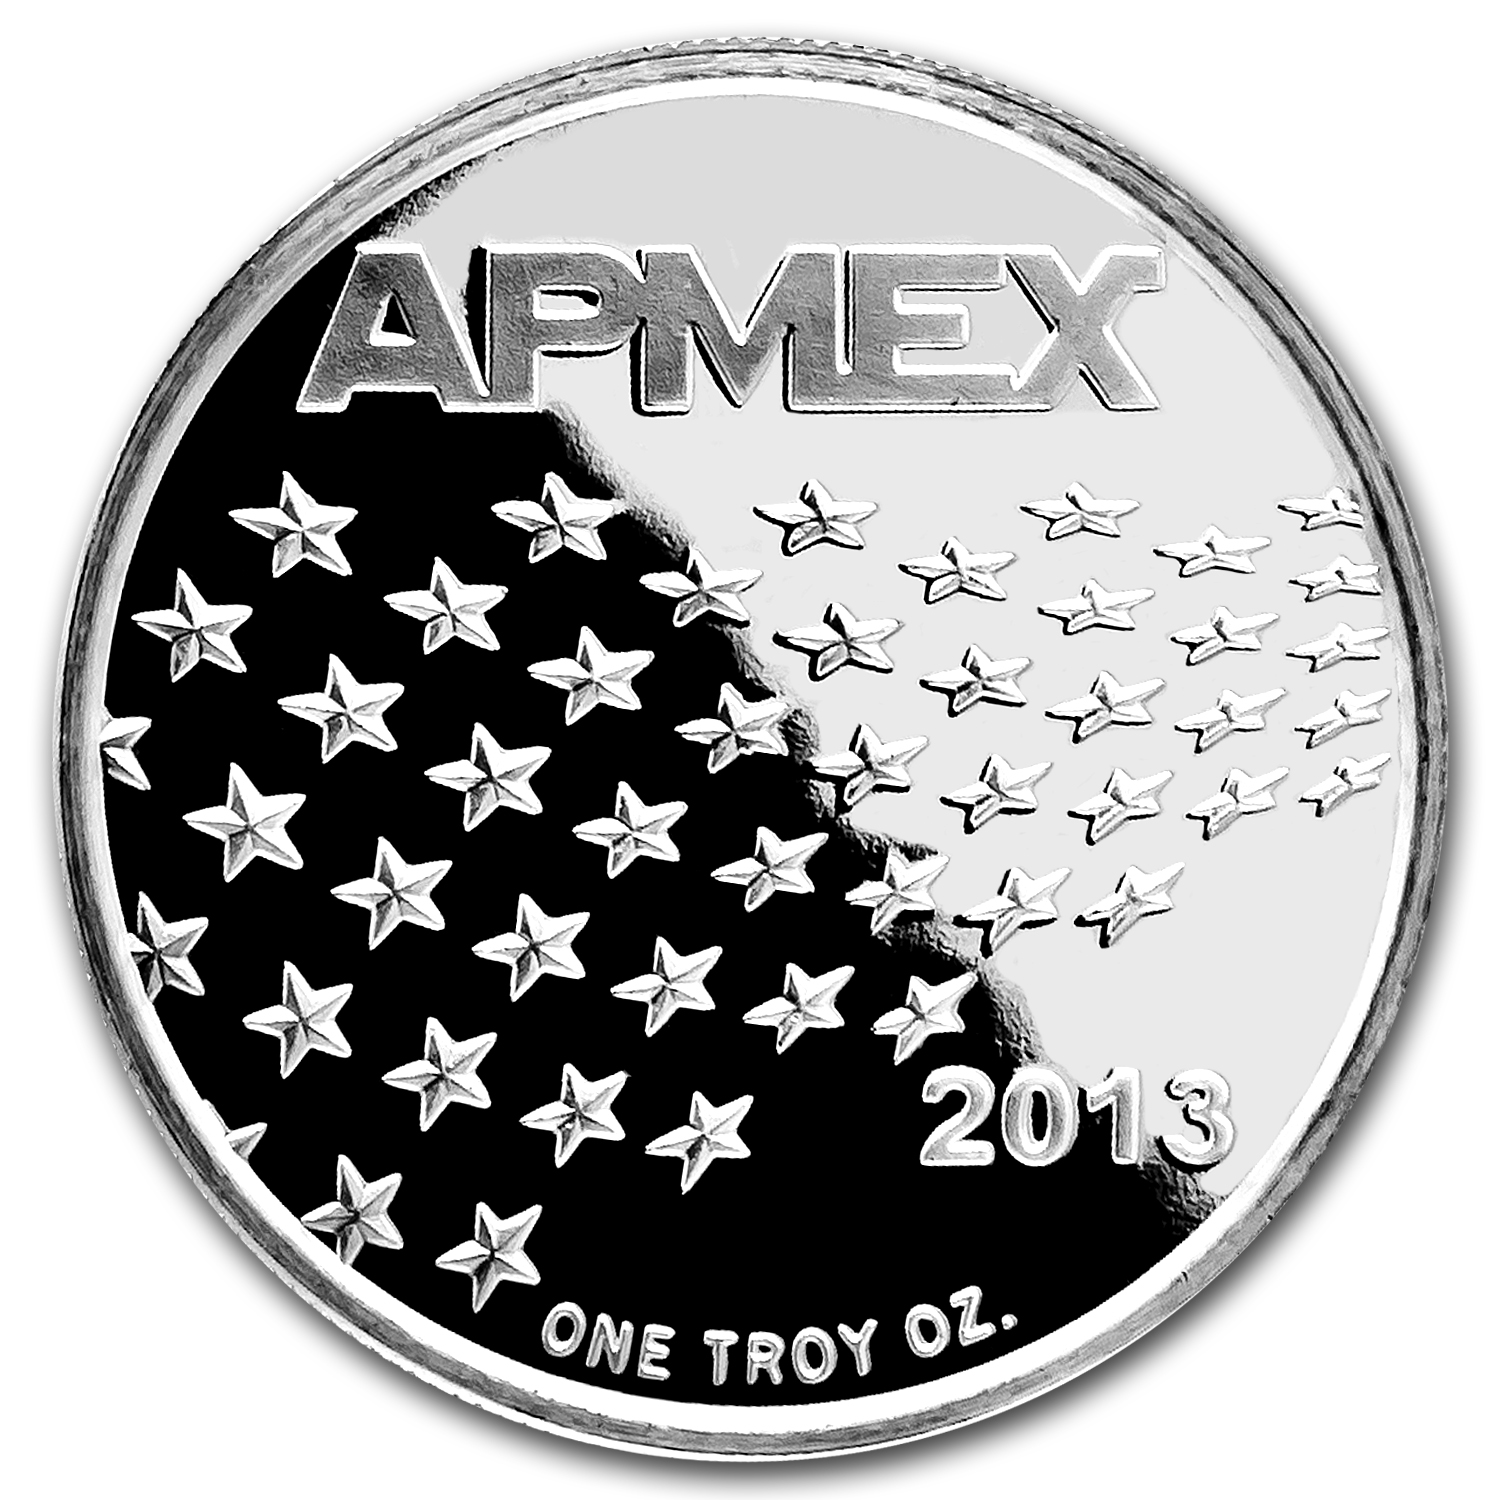 1 oz Silver Rounds - APMEX (2013 Stars and Stripes)